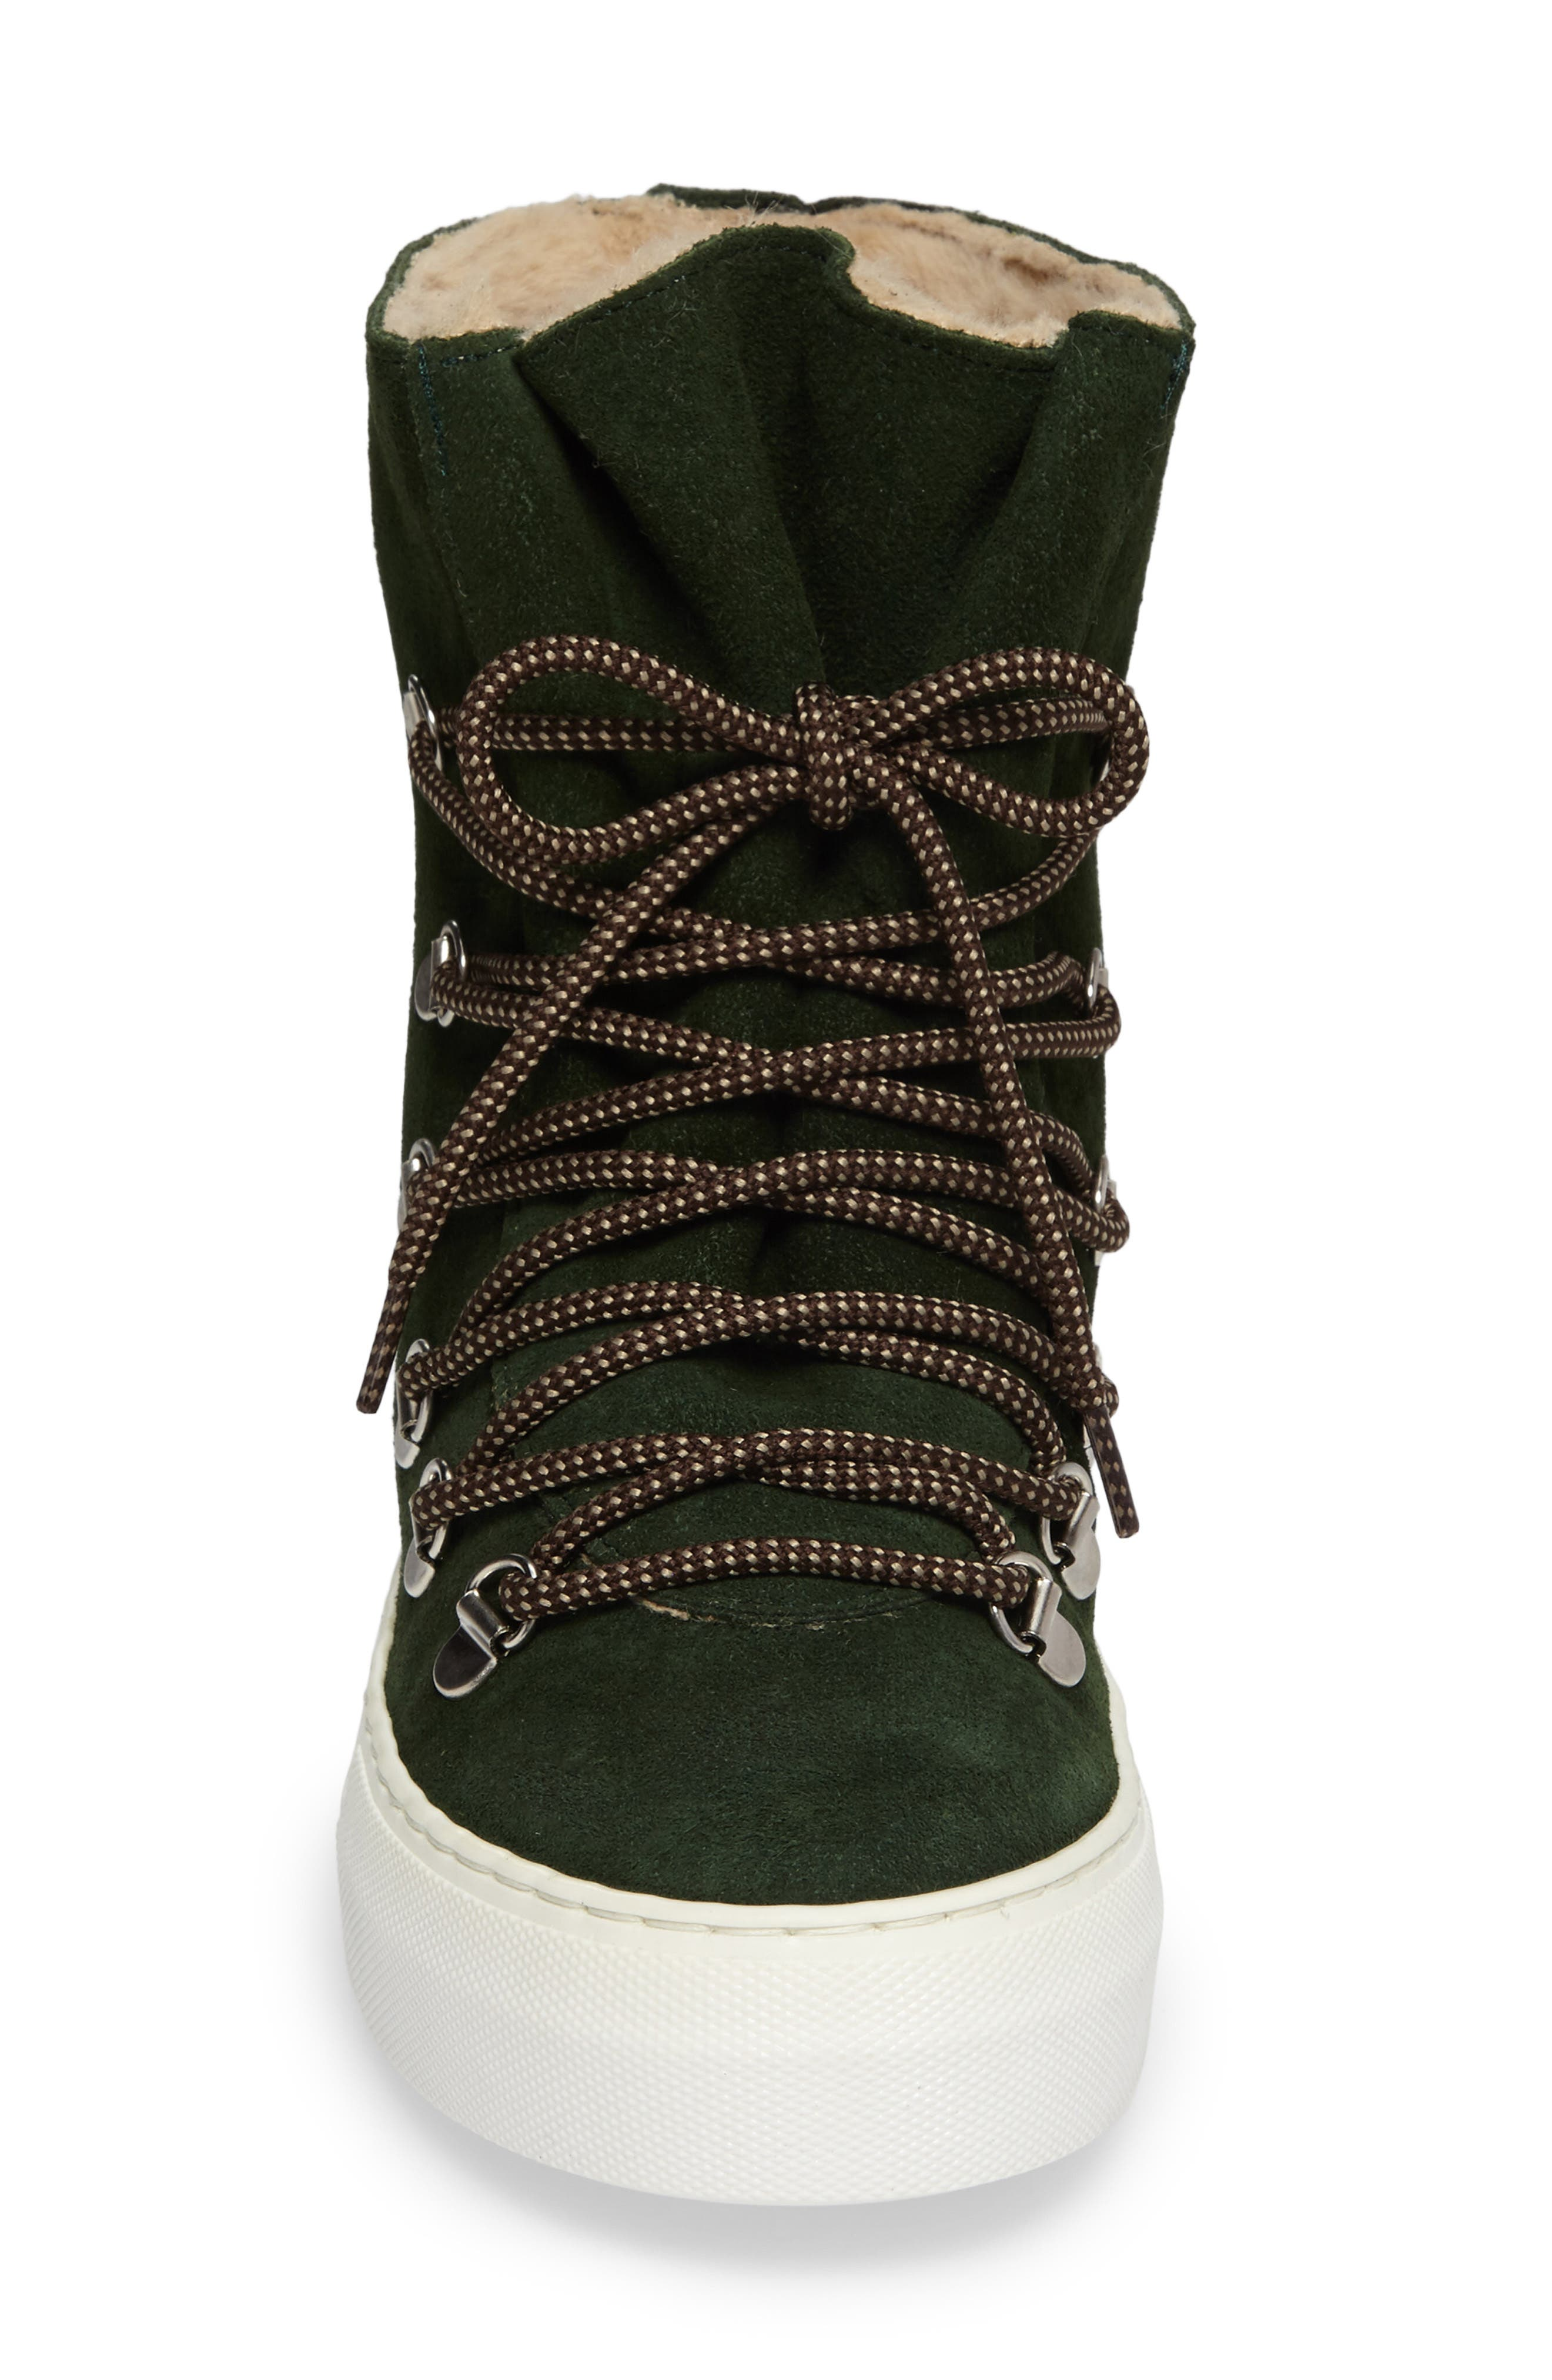 Cimone High Top Sneaker,                             Alternate thumbnail 4, color,                             Green Suede